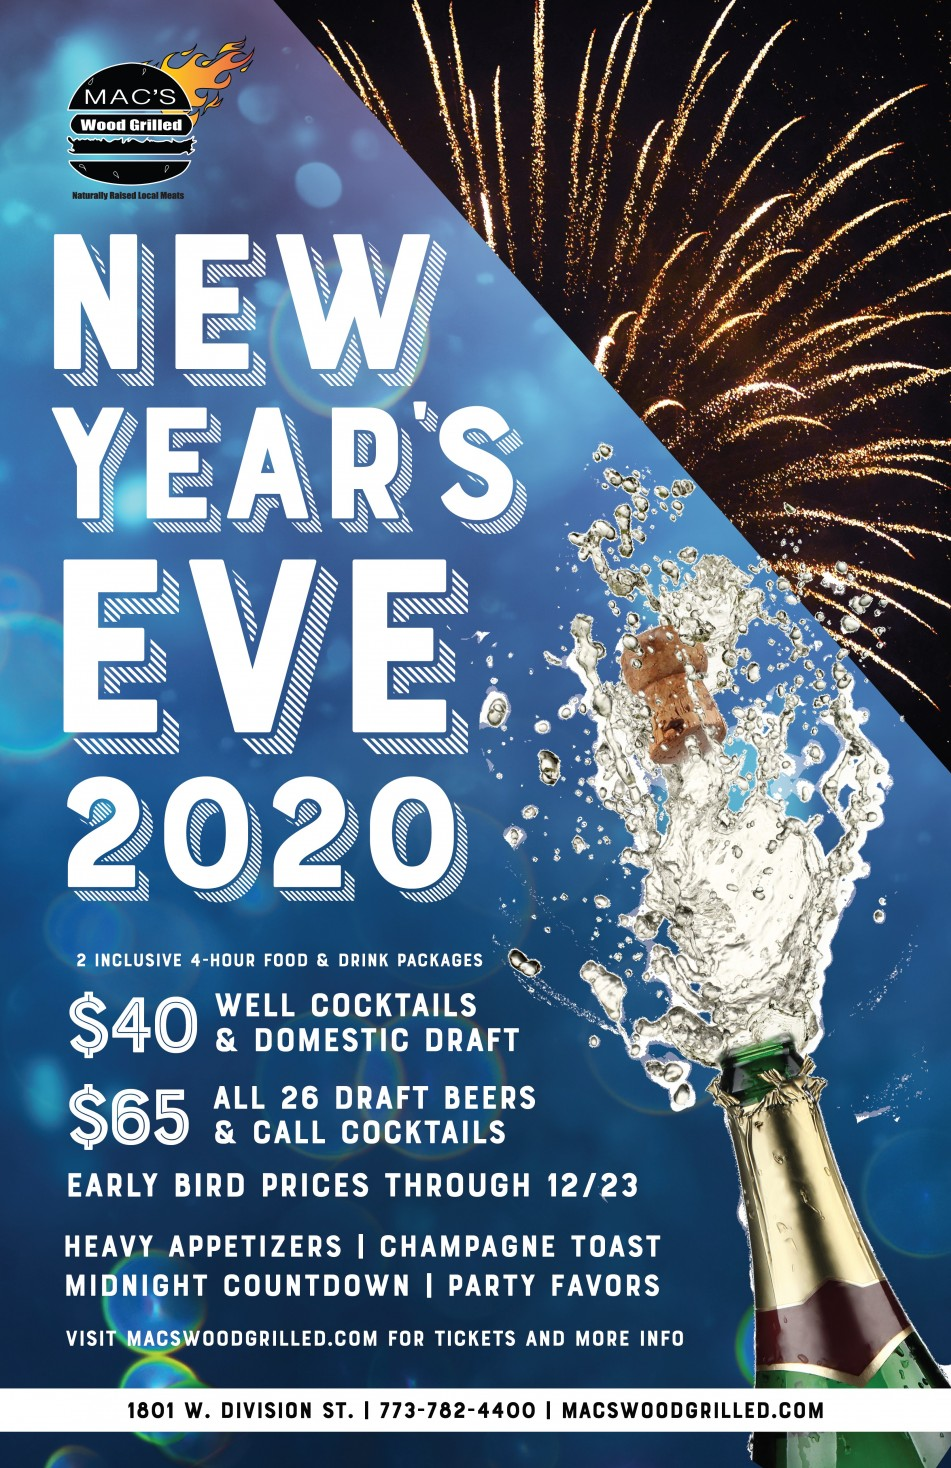 New Year's Eve 2020 at Mac's Wood Grilled